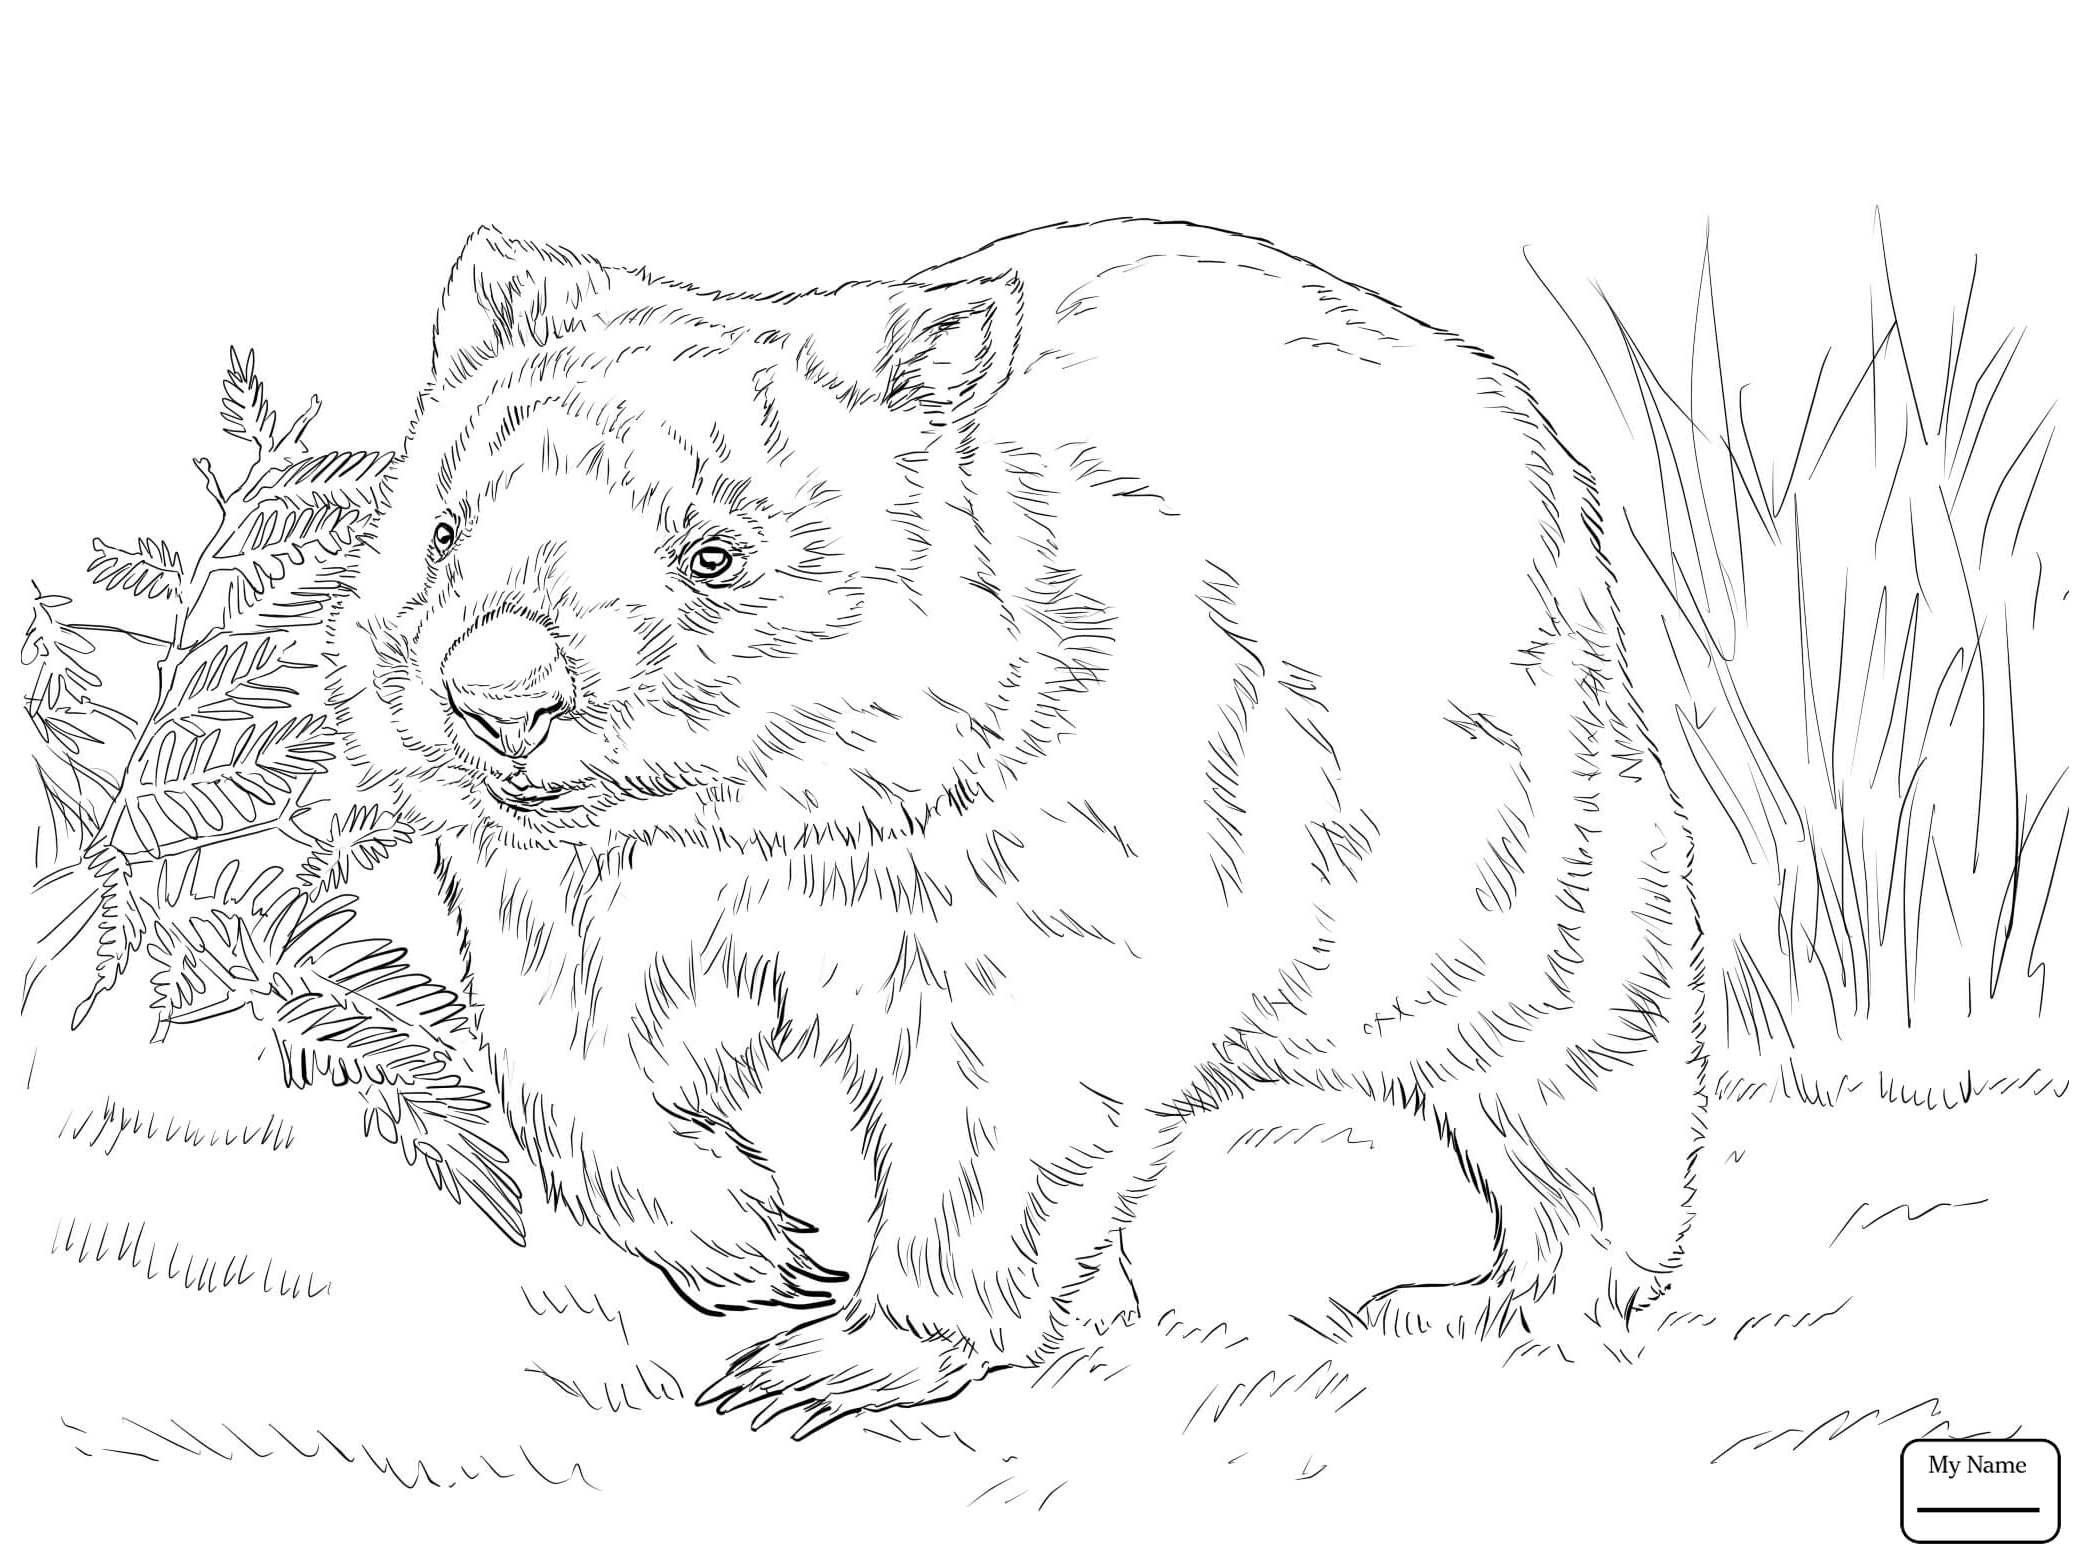 Wombat Drawing At Getdrawings Com Free For Personal Use Wombat Fossil  Prehistoric Animal Coloring Pages 2089x1567